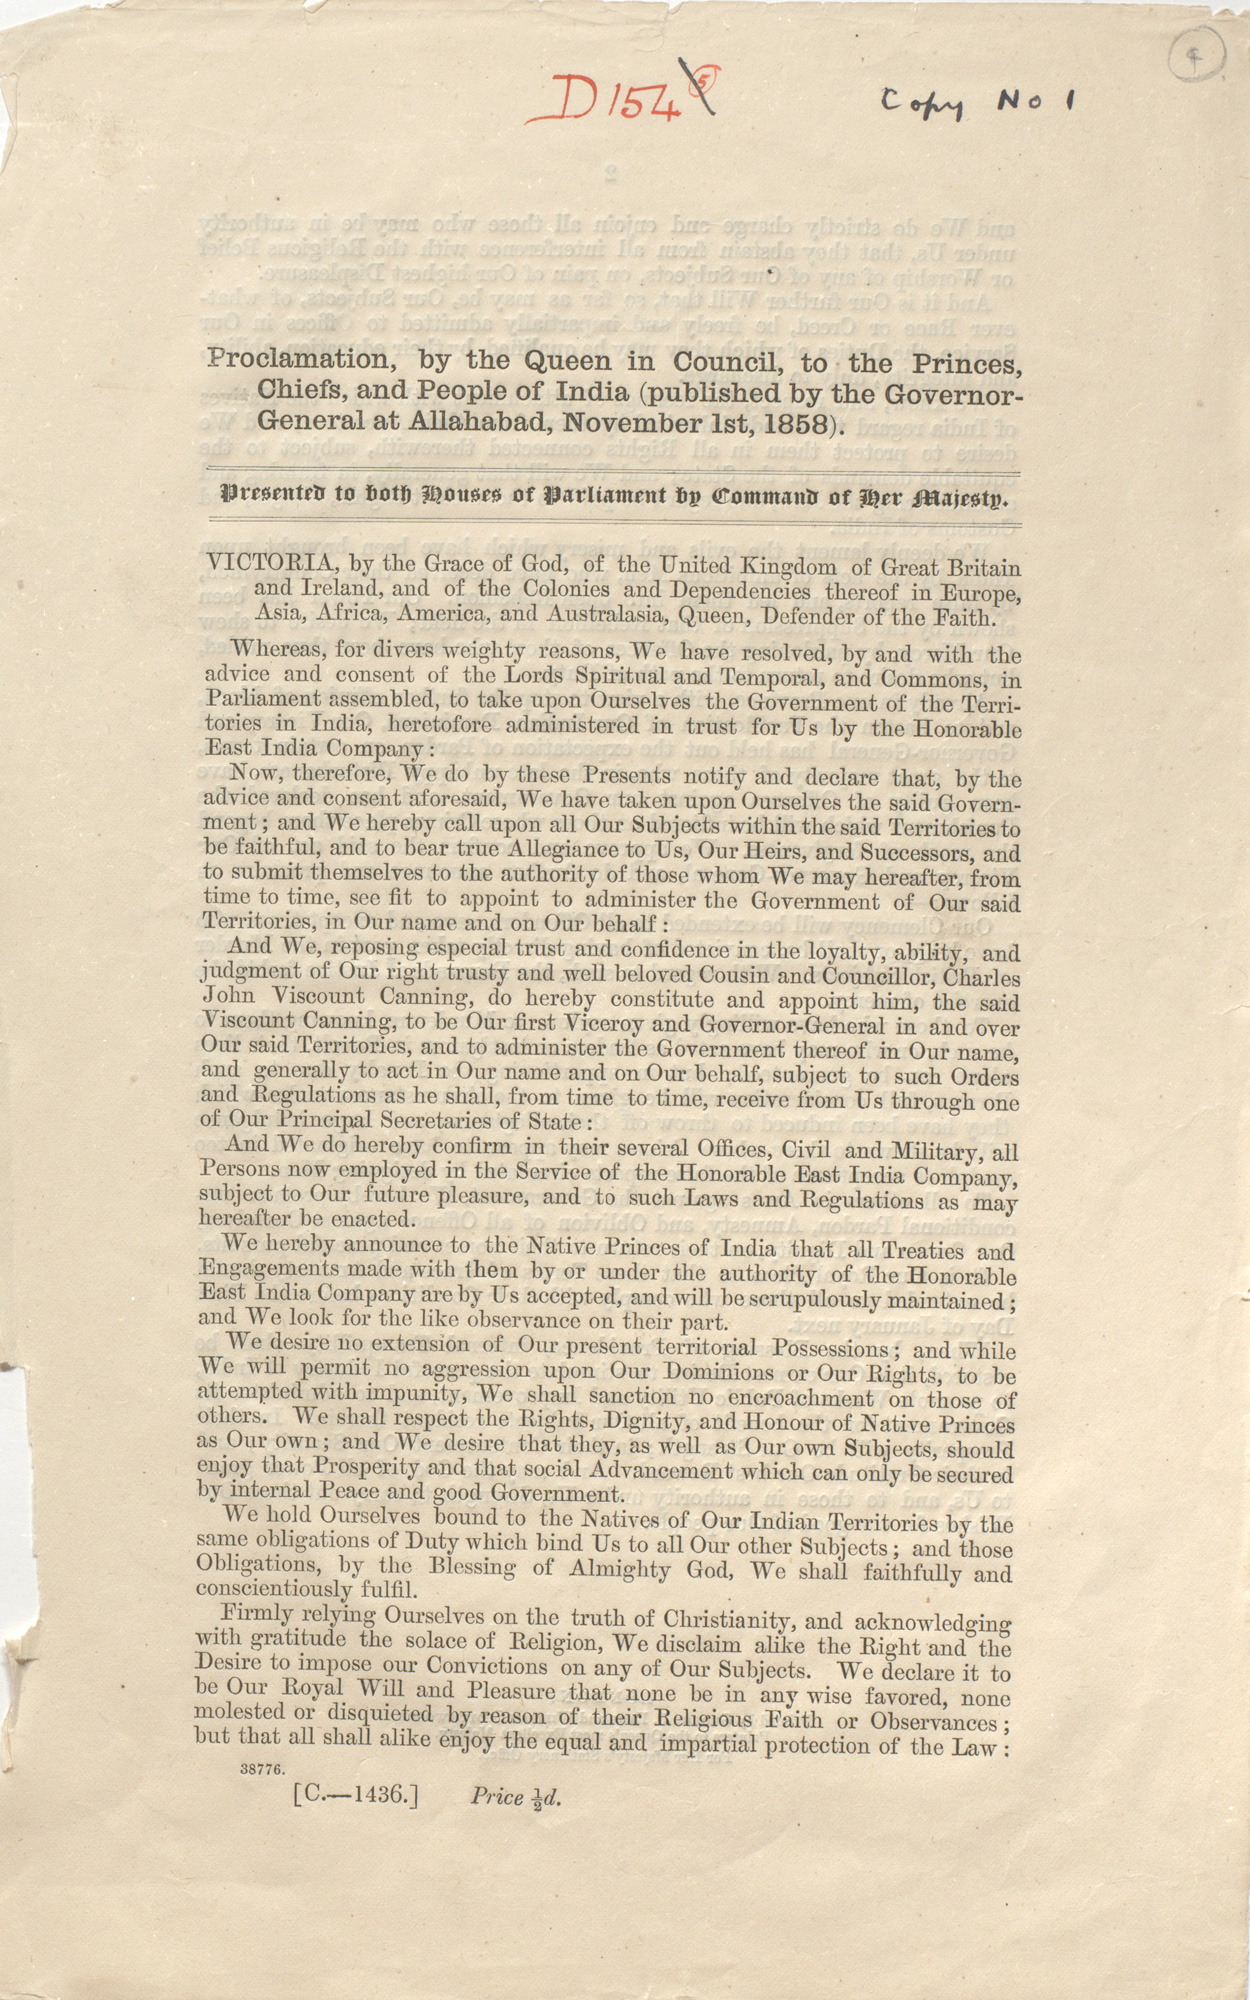 Proclamation, by the Queen in Council, to the Princes, Chiefs and People of India